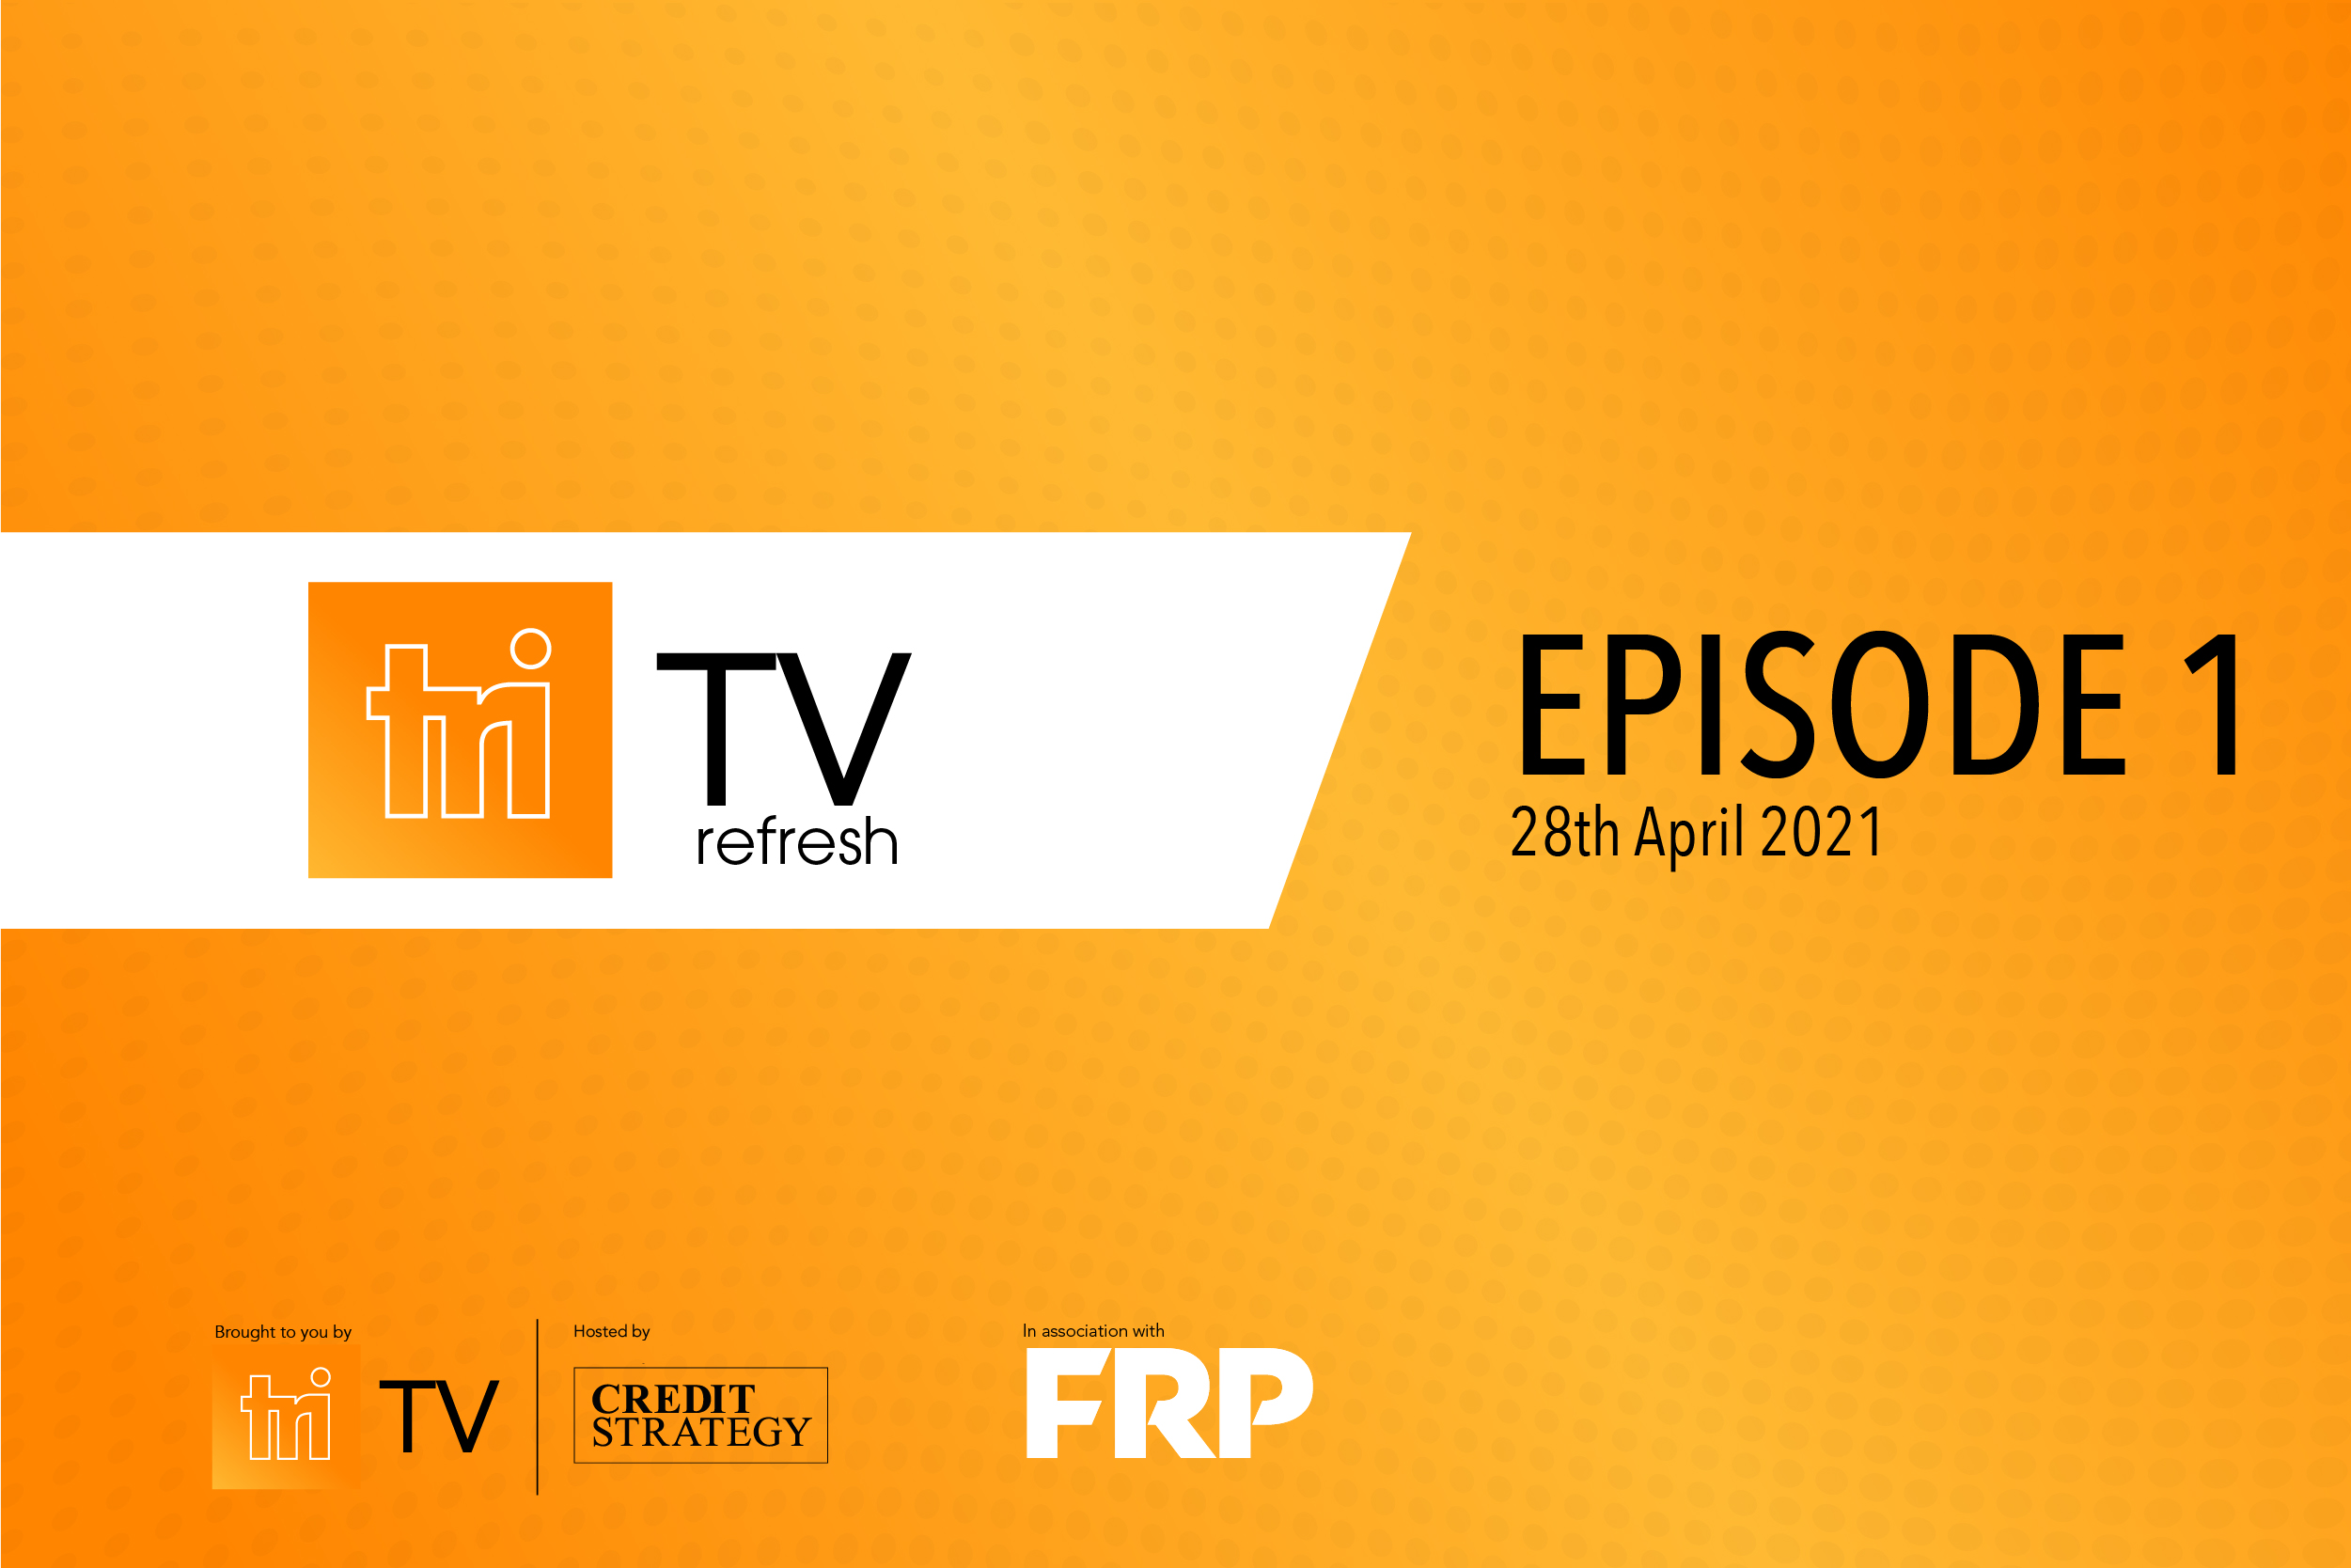 TRI TV Refresh - Commercial Landlord & Tenant Relationships During 'Lockdown'  /  Evolution of Restructuring Through COVID